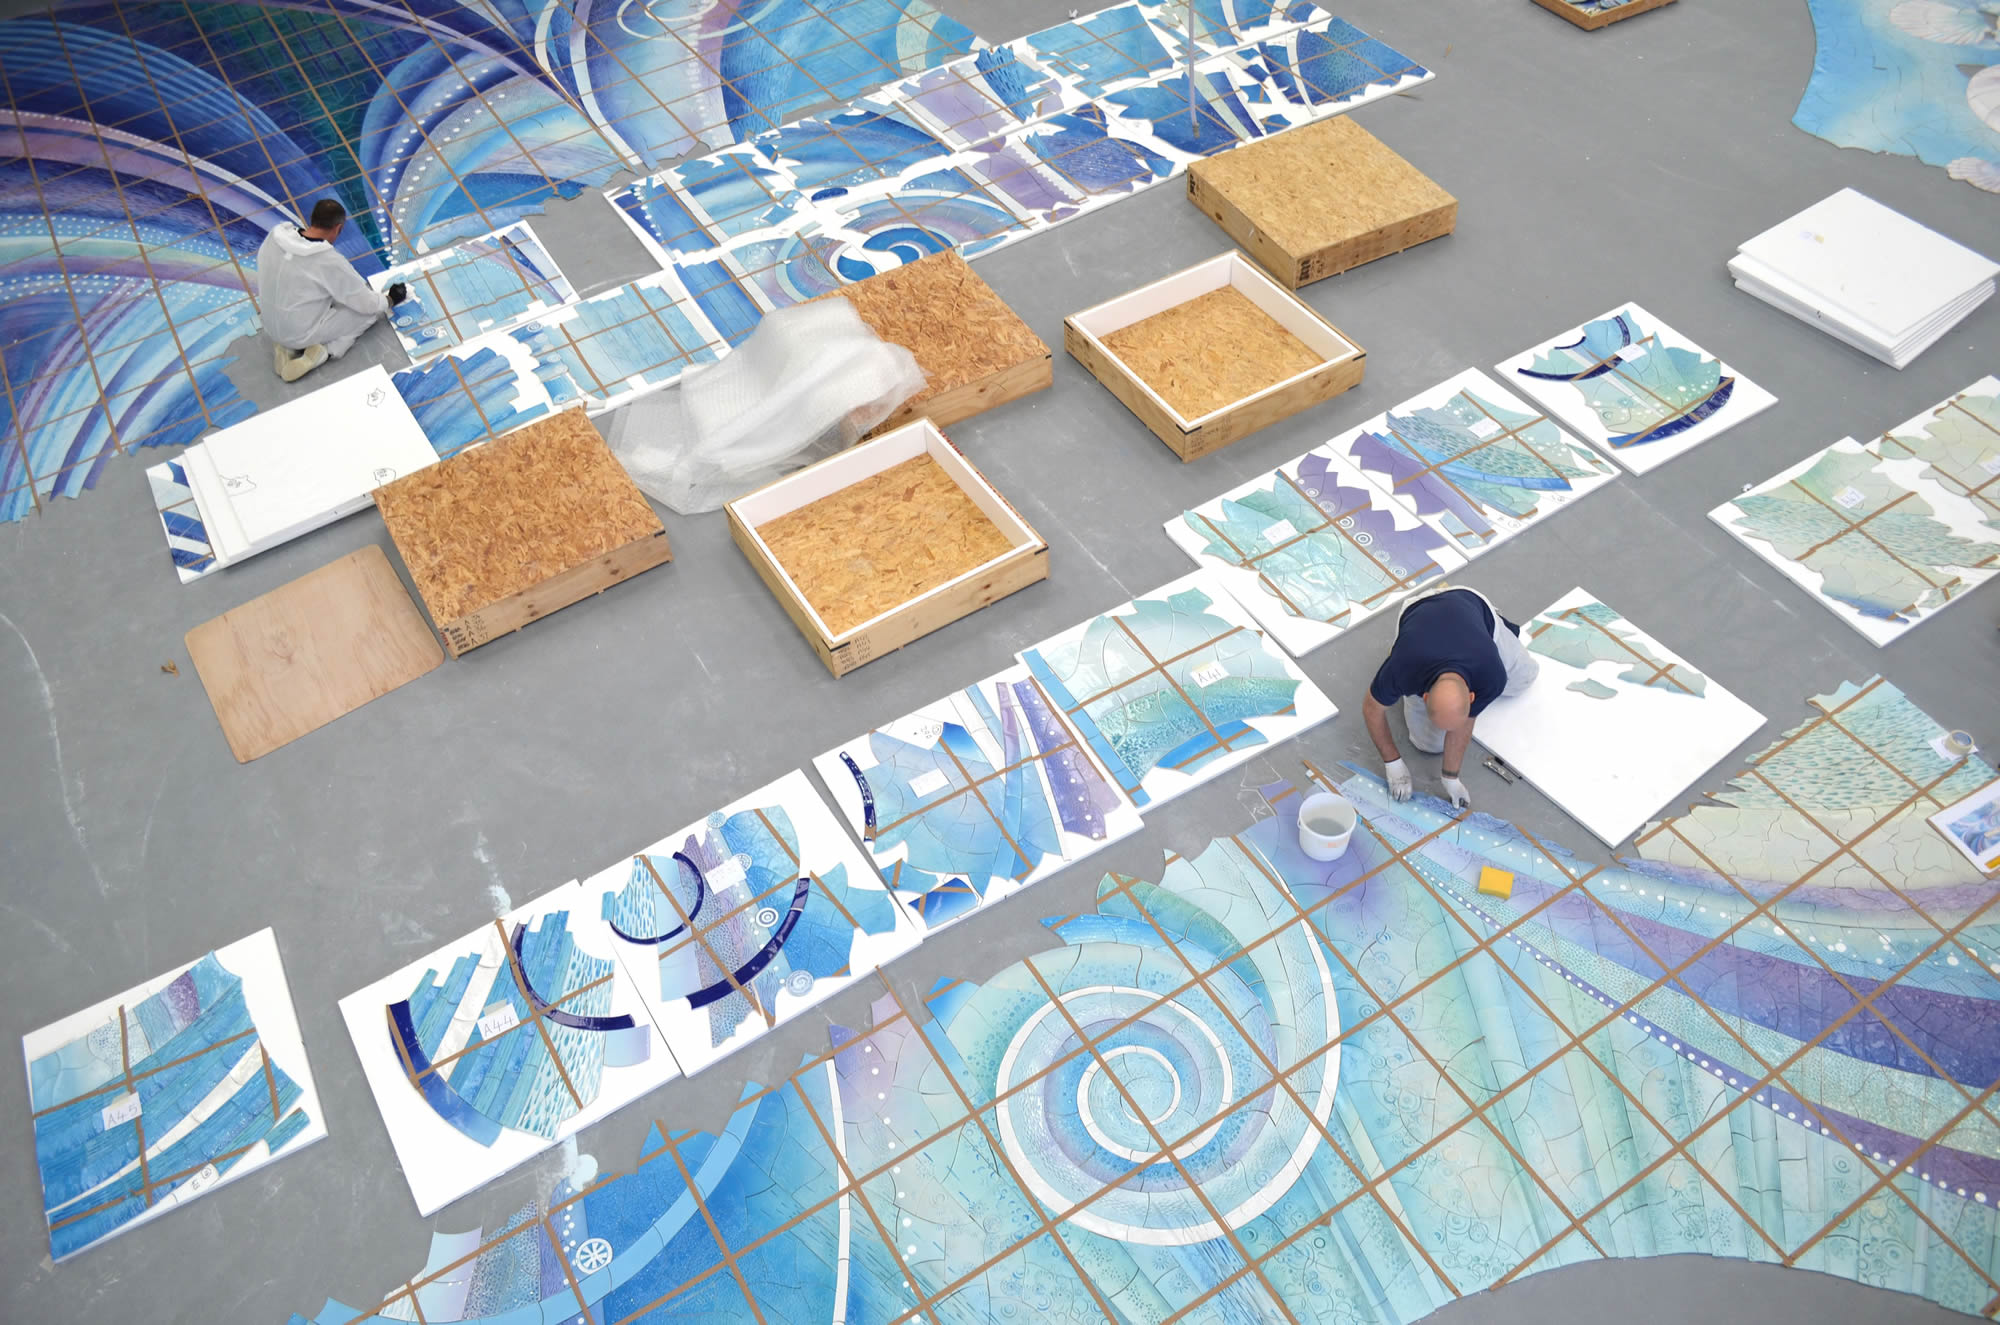 This is as much part of the 'art' of successfully producing large ceramic murals as the clay work and the glazing. Tiles are packed in a well-planned and logical manner to allow installation to commence wherever site conditions determine. Measurements, reference grid lines, full-sized plastic templates (useful for positioning and checking sizes before commencing), factory photographs and comprehensive packing details are supplied with the work.